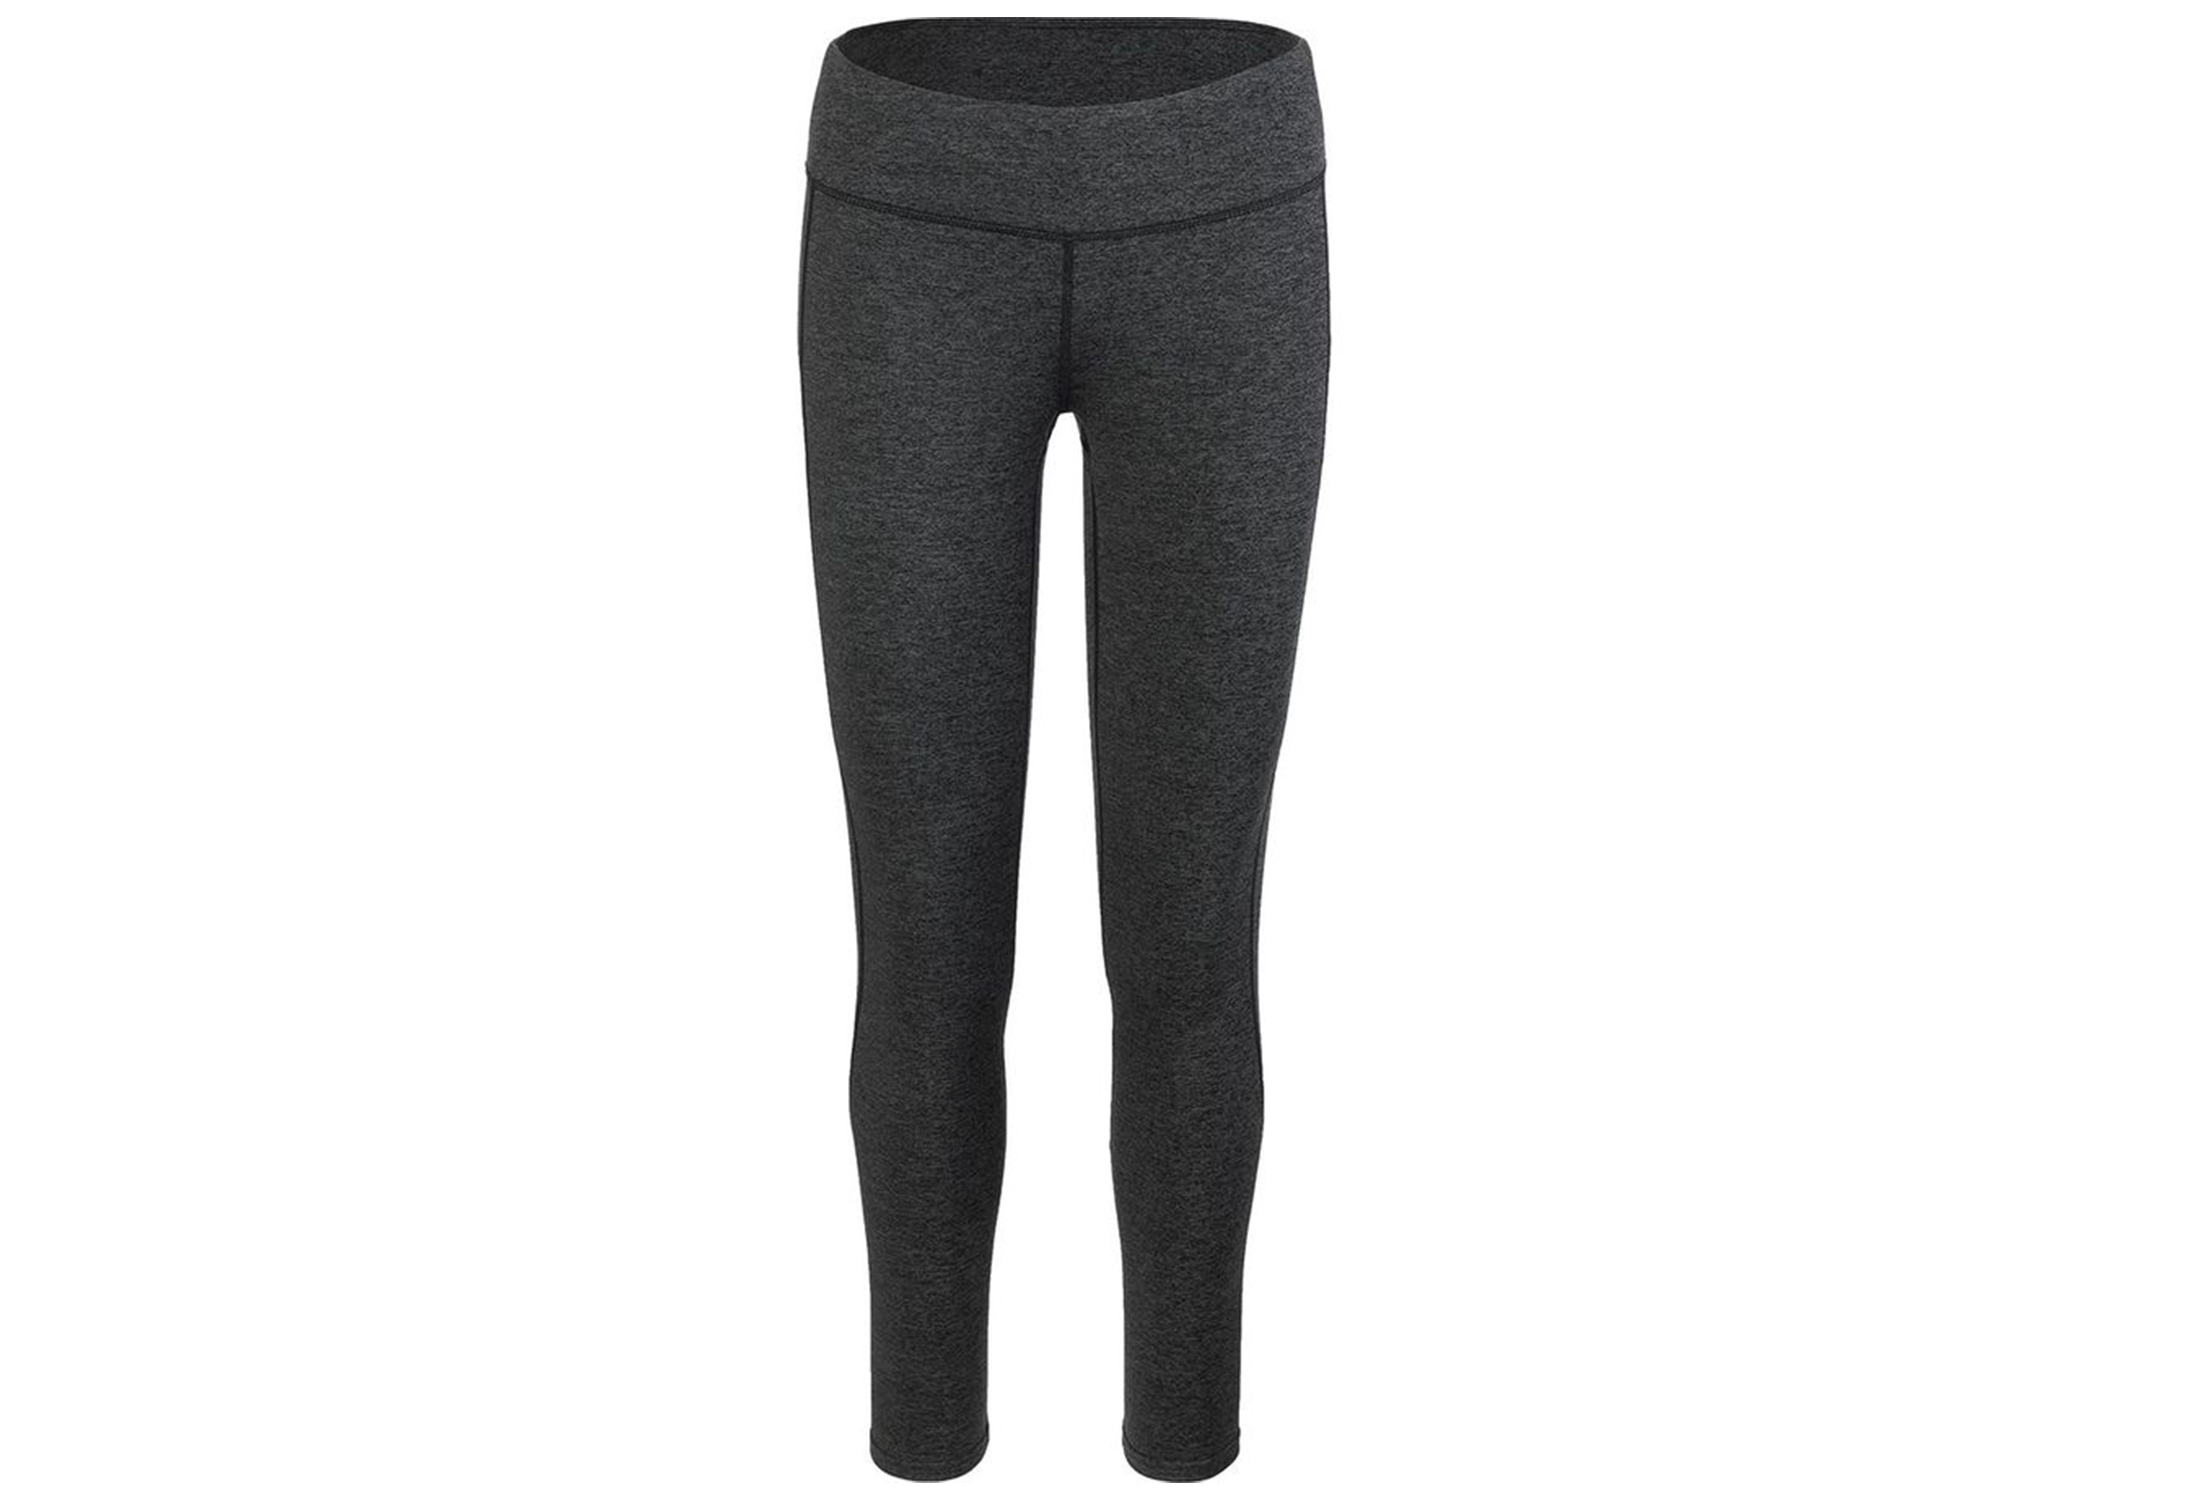 Stoic Apparel performance leggings